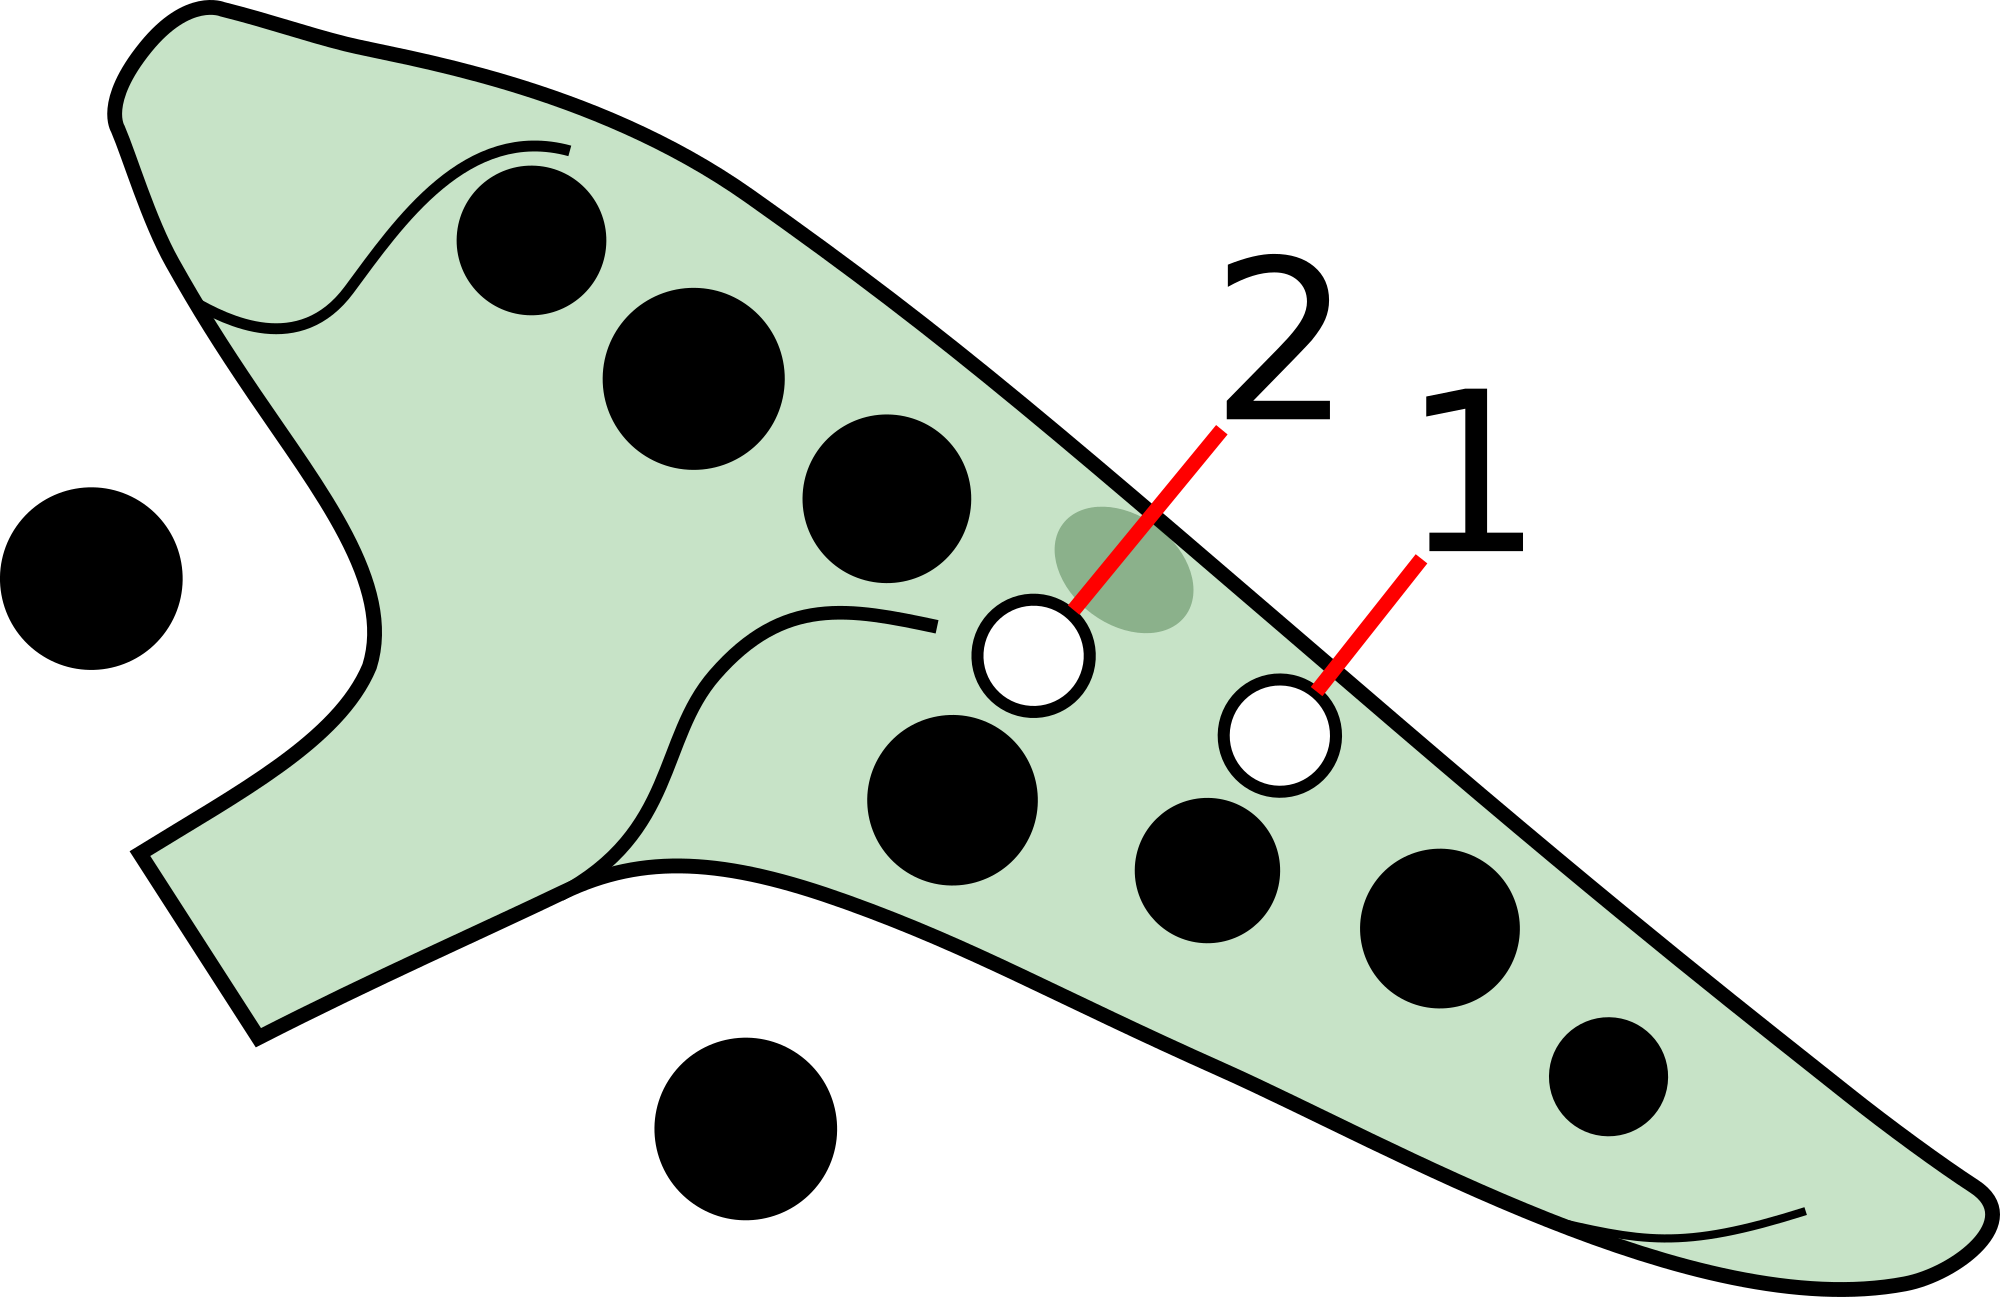 A 12 hole ocarina with japanese fingering, the subholes are on the right hand index and middle fingers